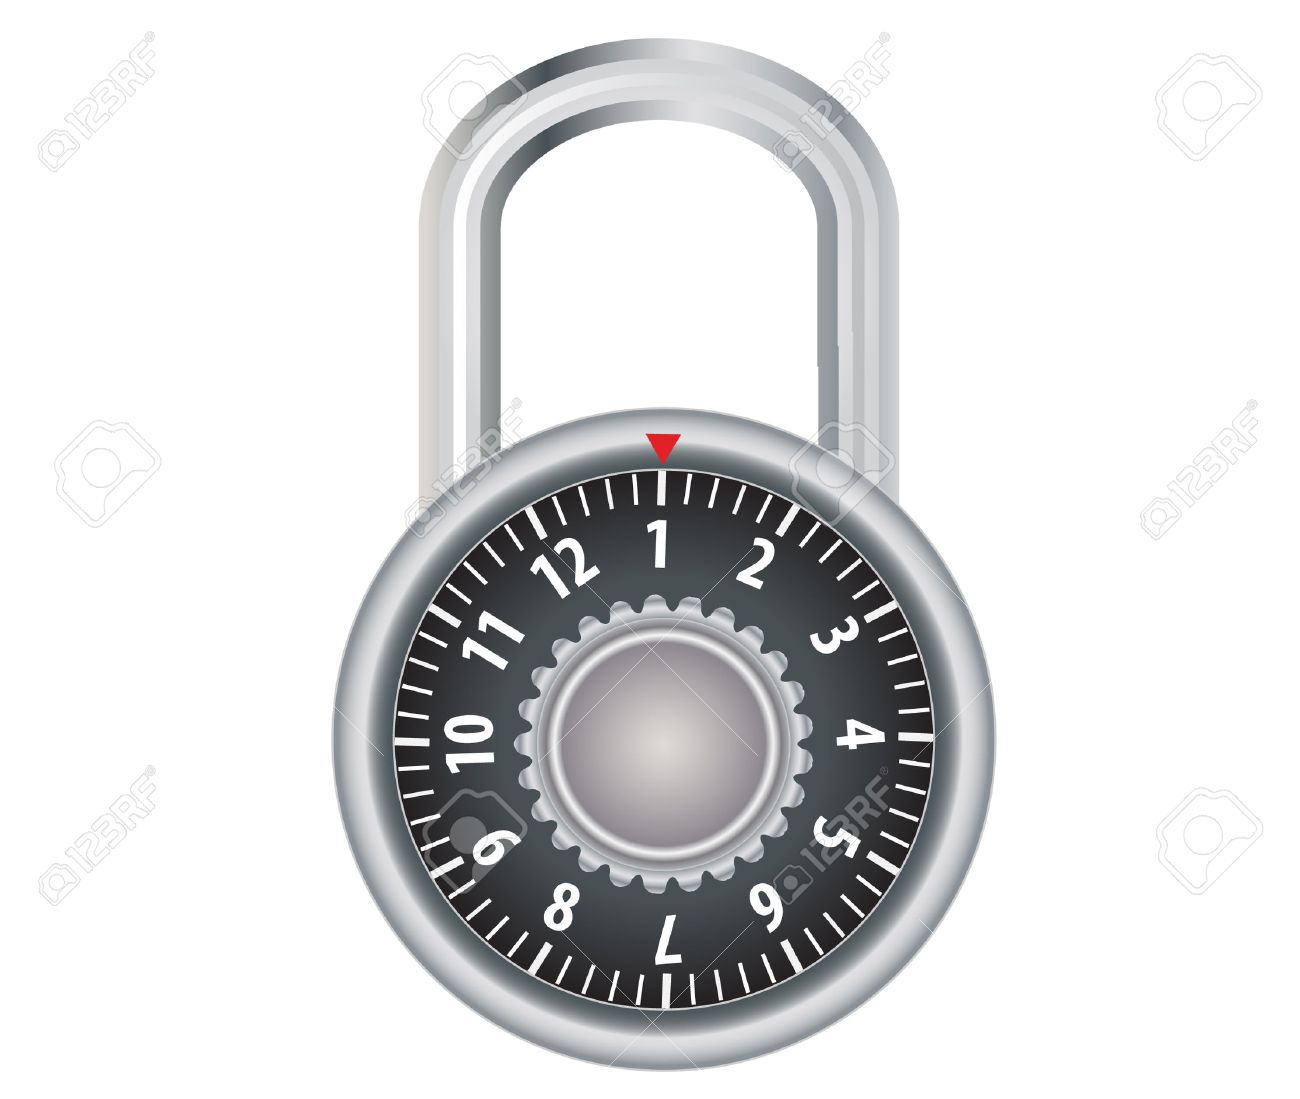 Image result for combination lock  clipart